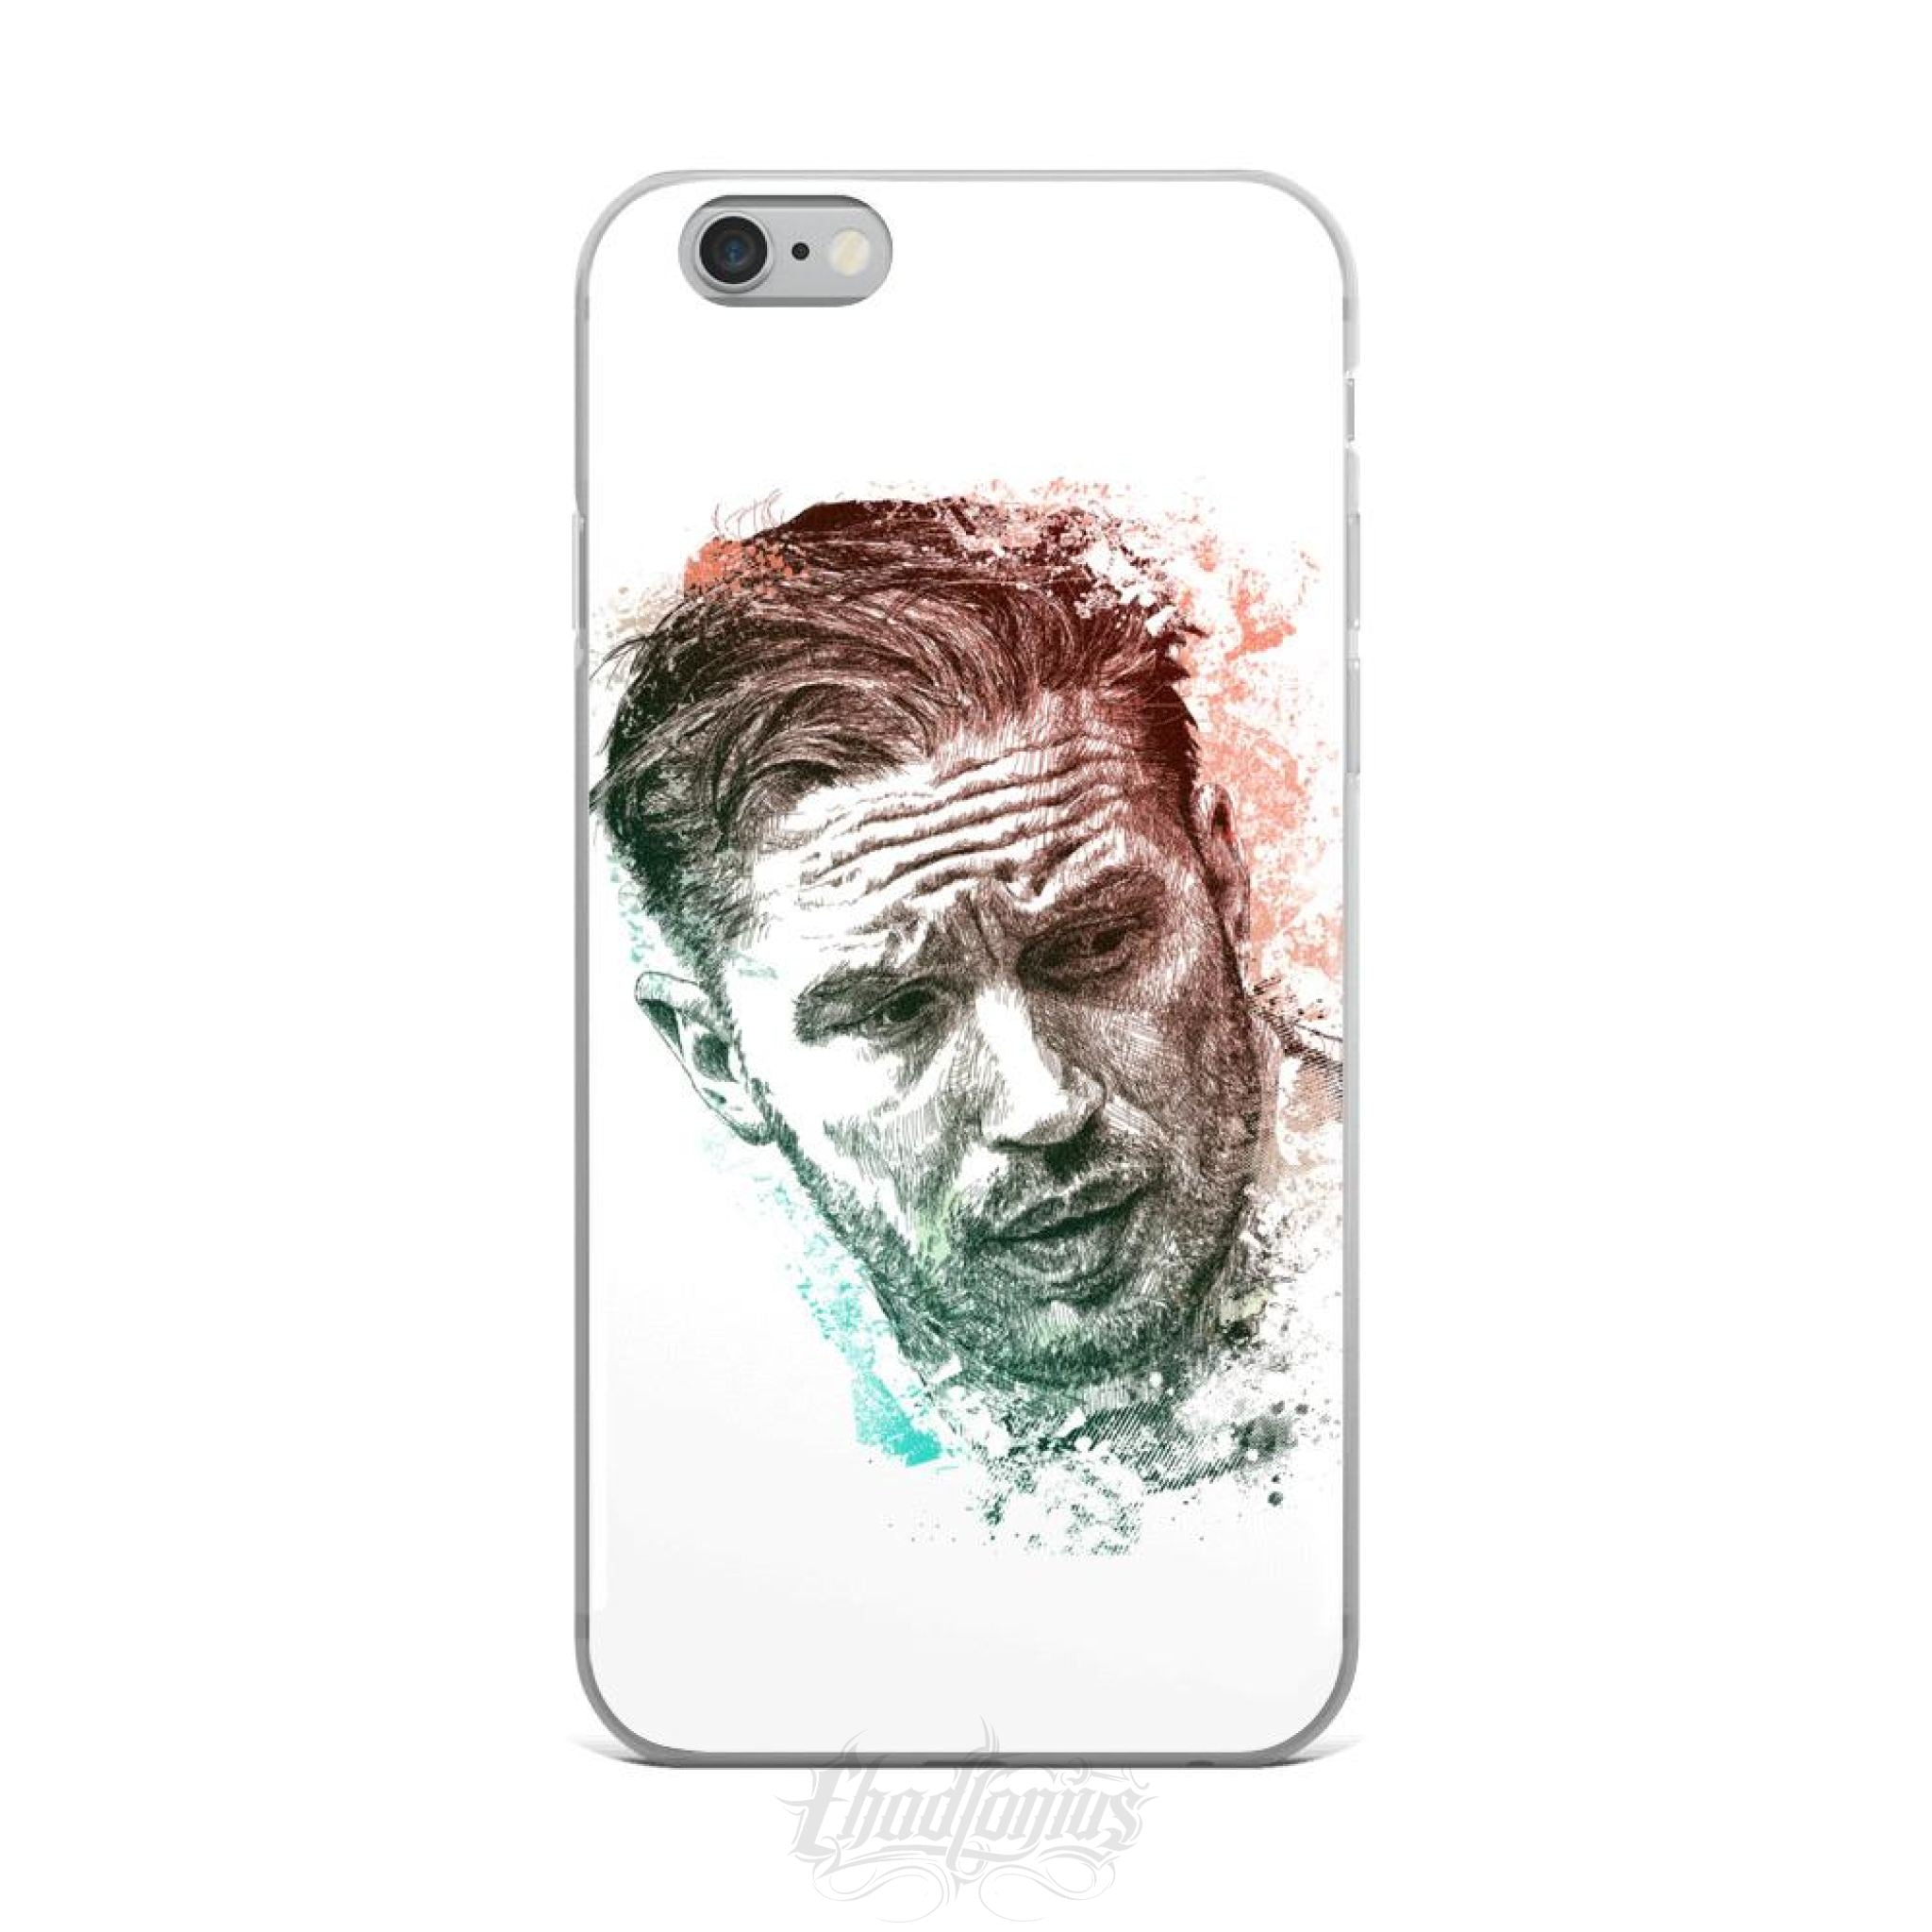 Tom Hardy - Iphone Case 6 Plus/6S Plus Phone Cases Chadlonius